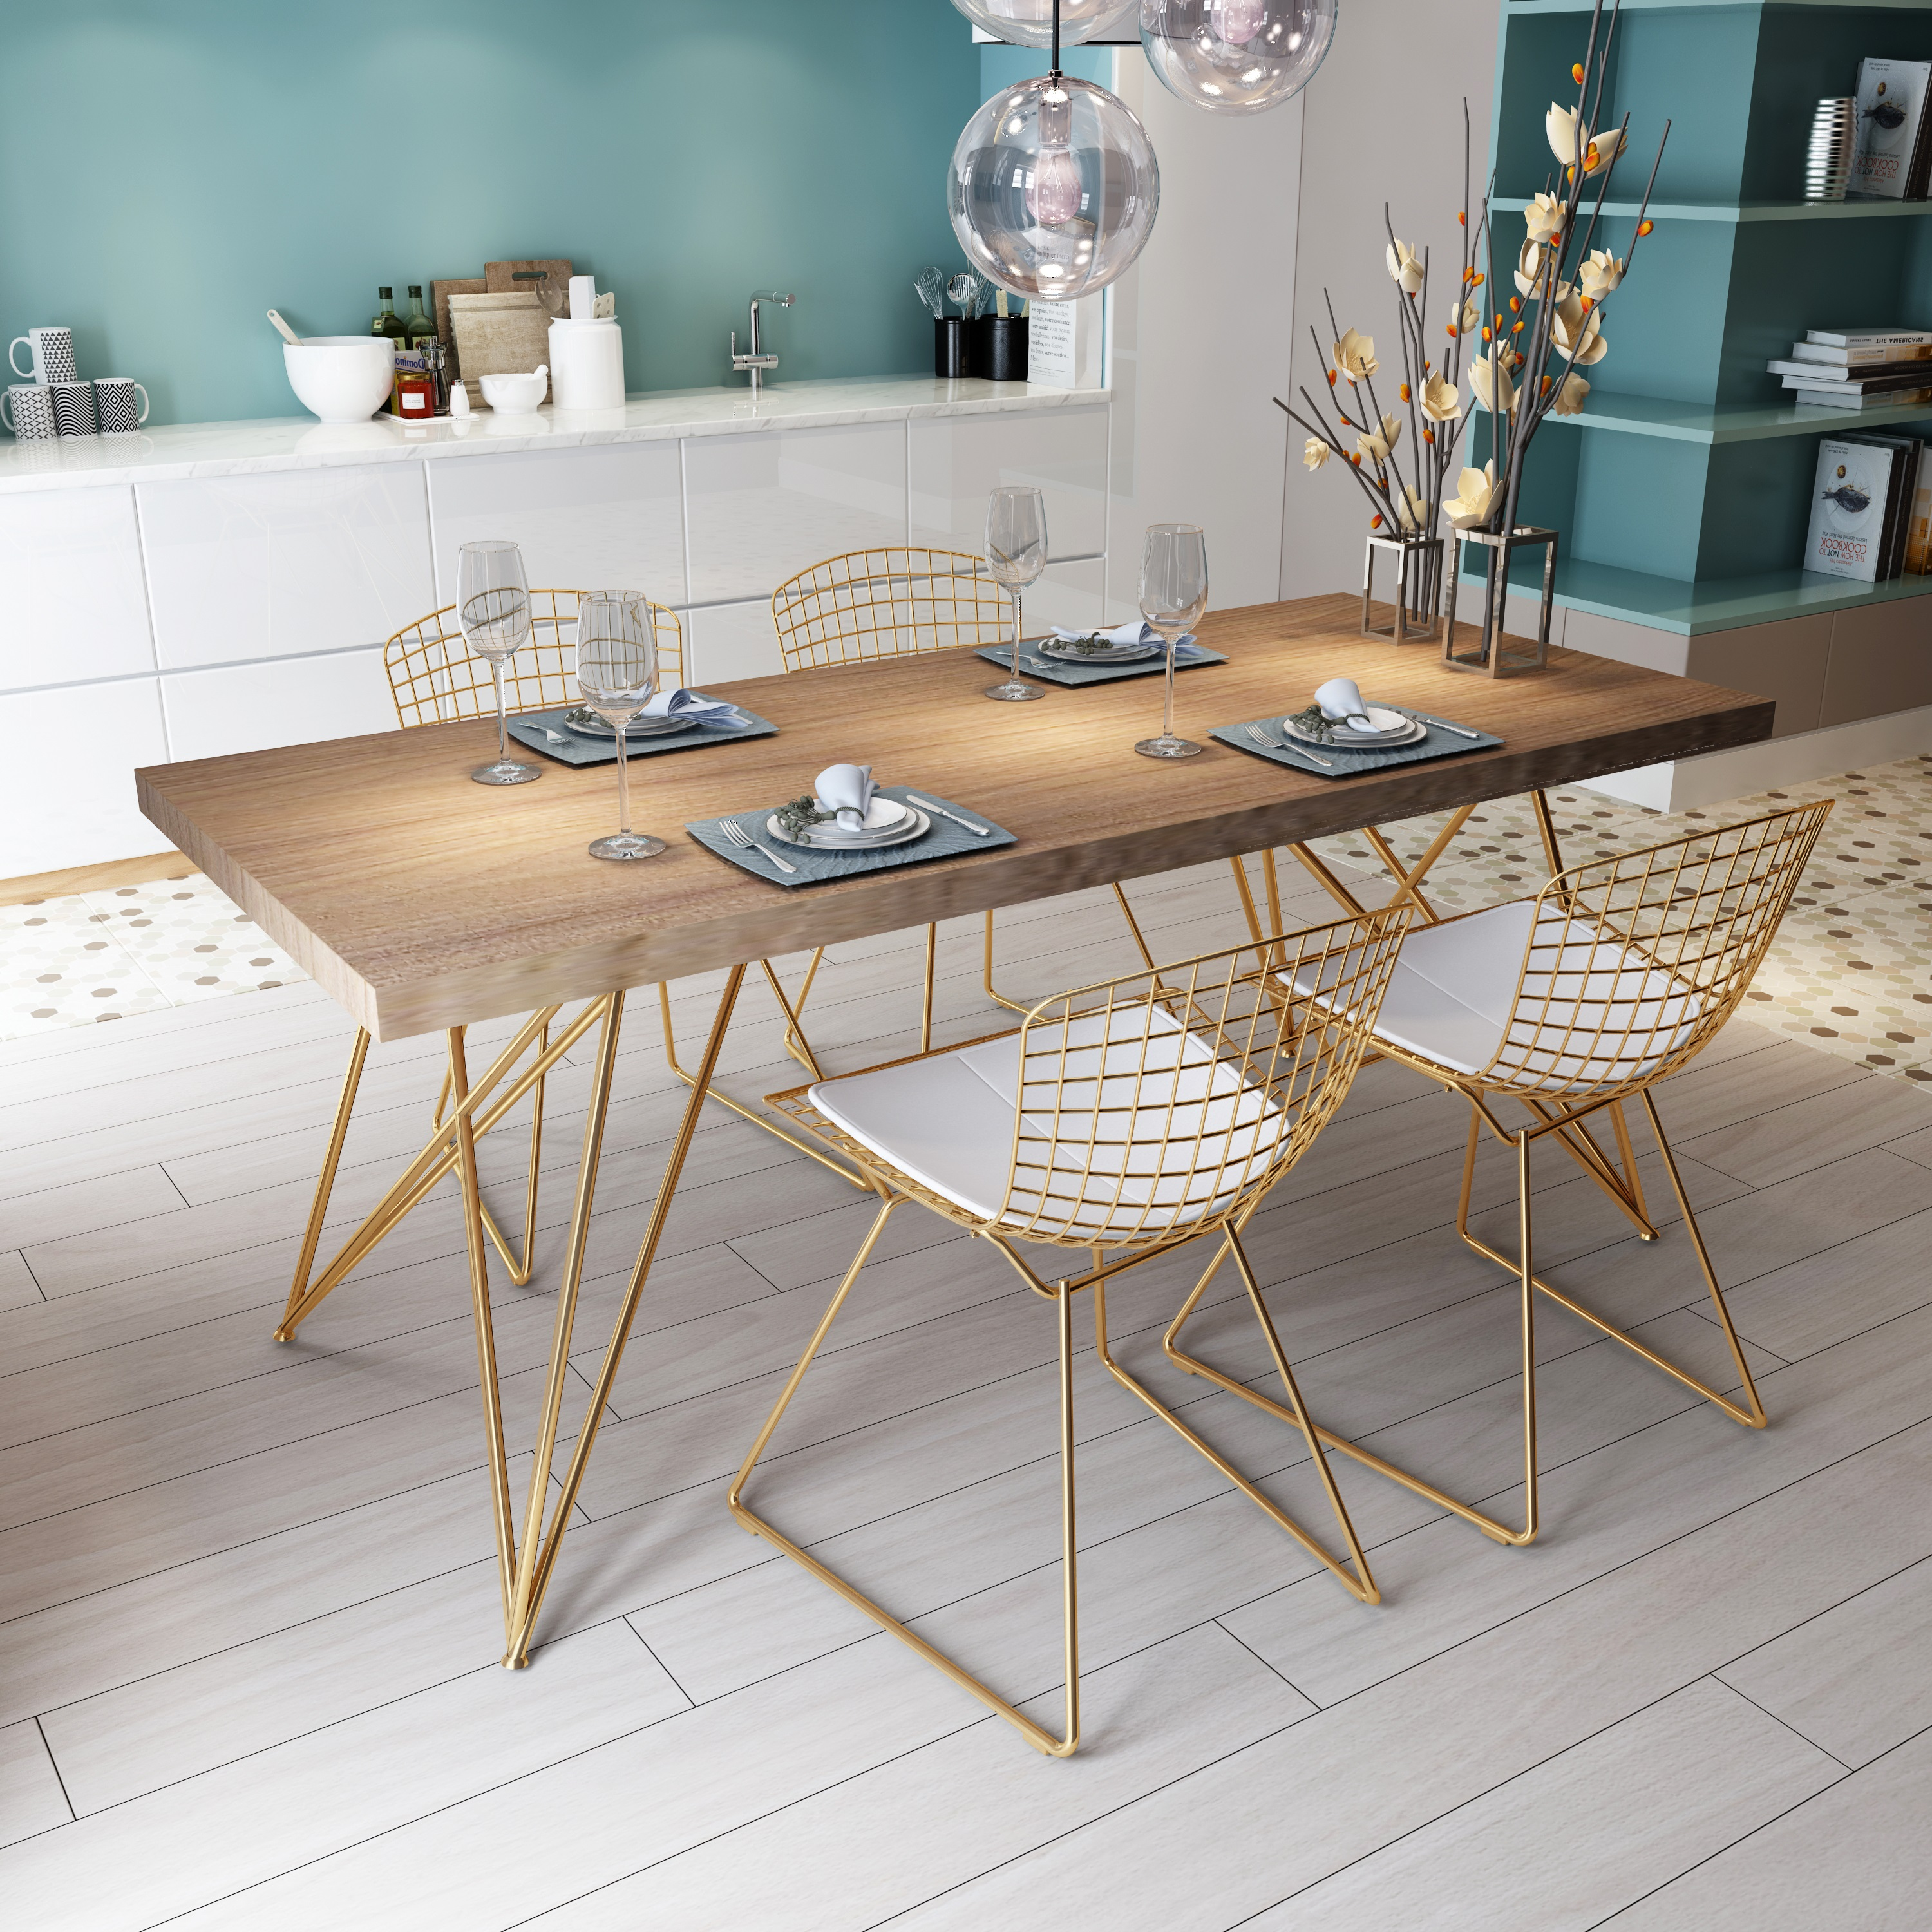 Nordic Solid Wood Dining Table Modern Simple Light Luxury And Chair Combination Small Apartment Household Marble